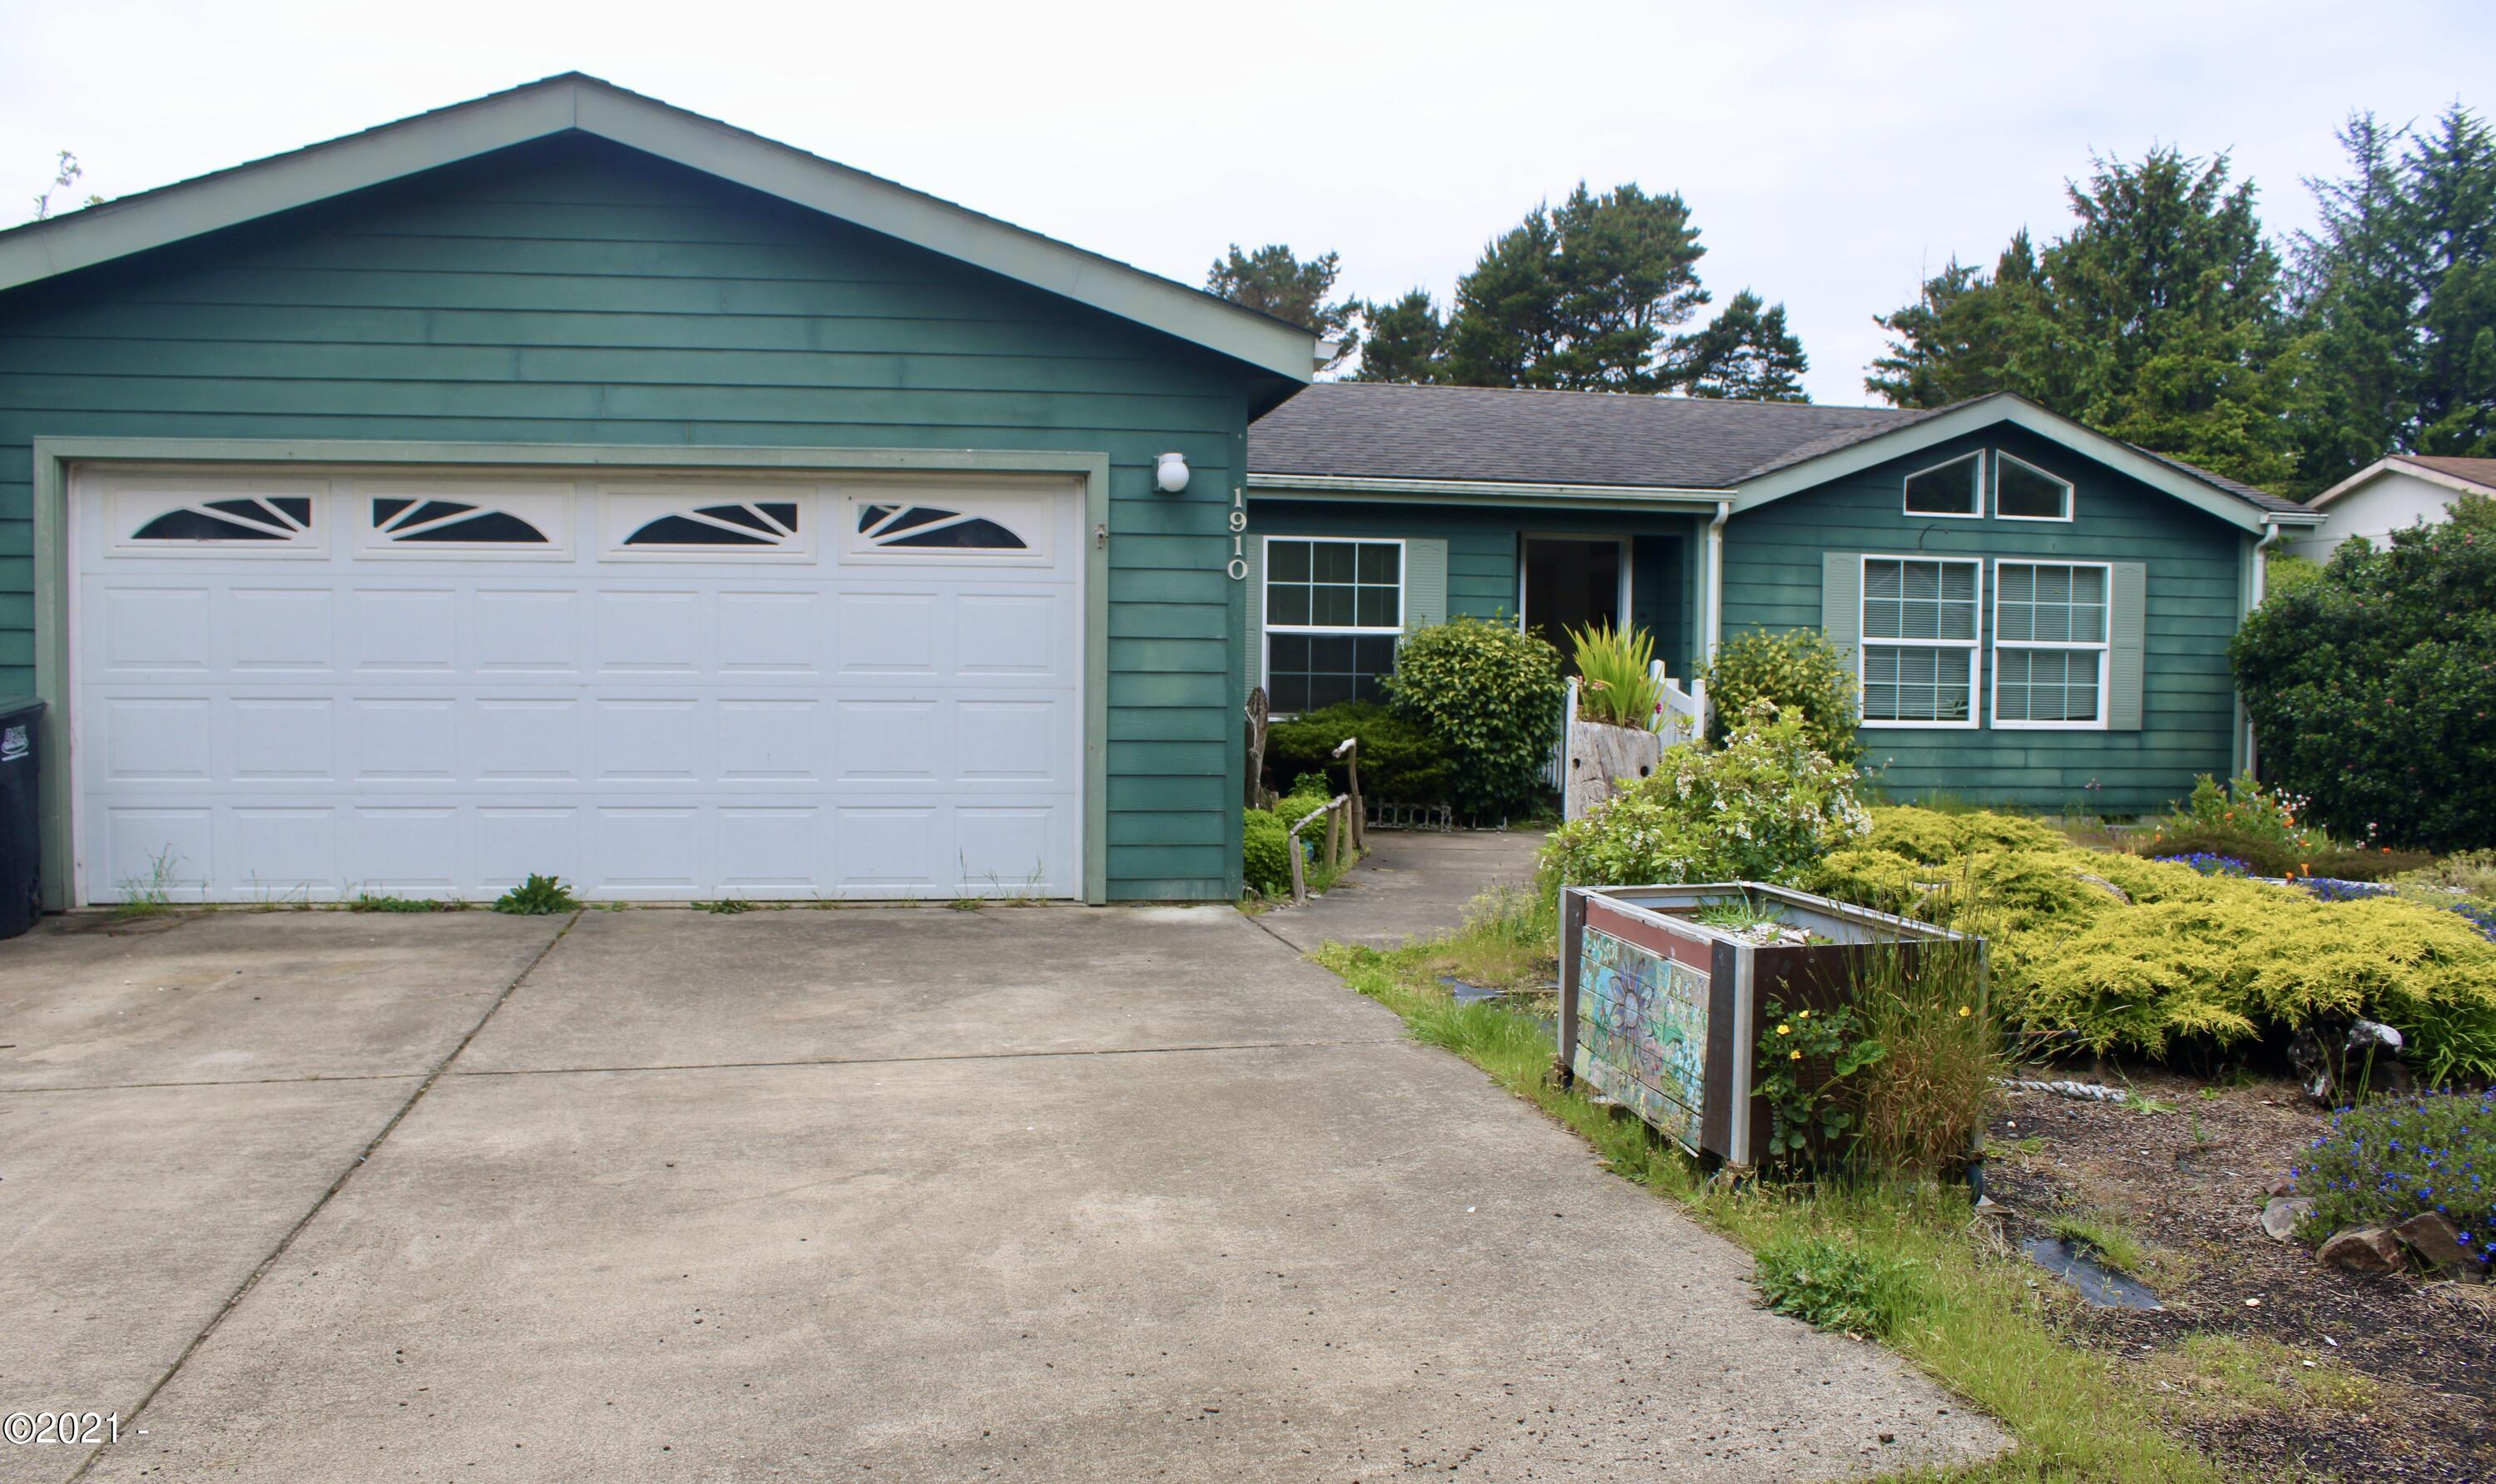 1910 NW Morse Way, Waldport, OR 97394 - Front of house.